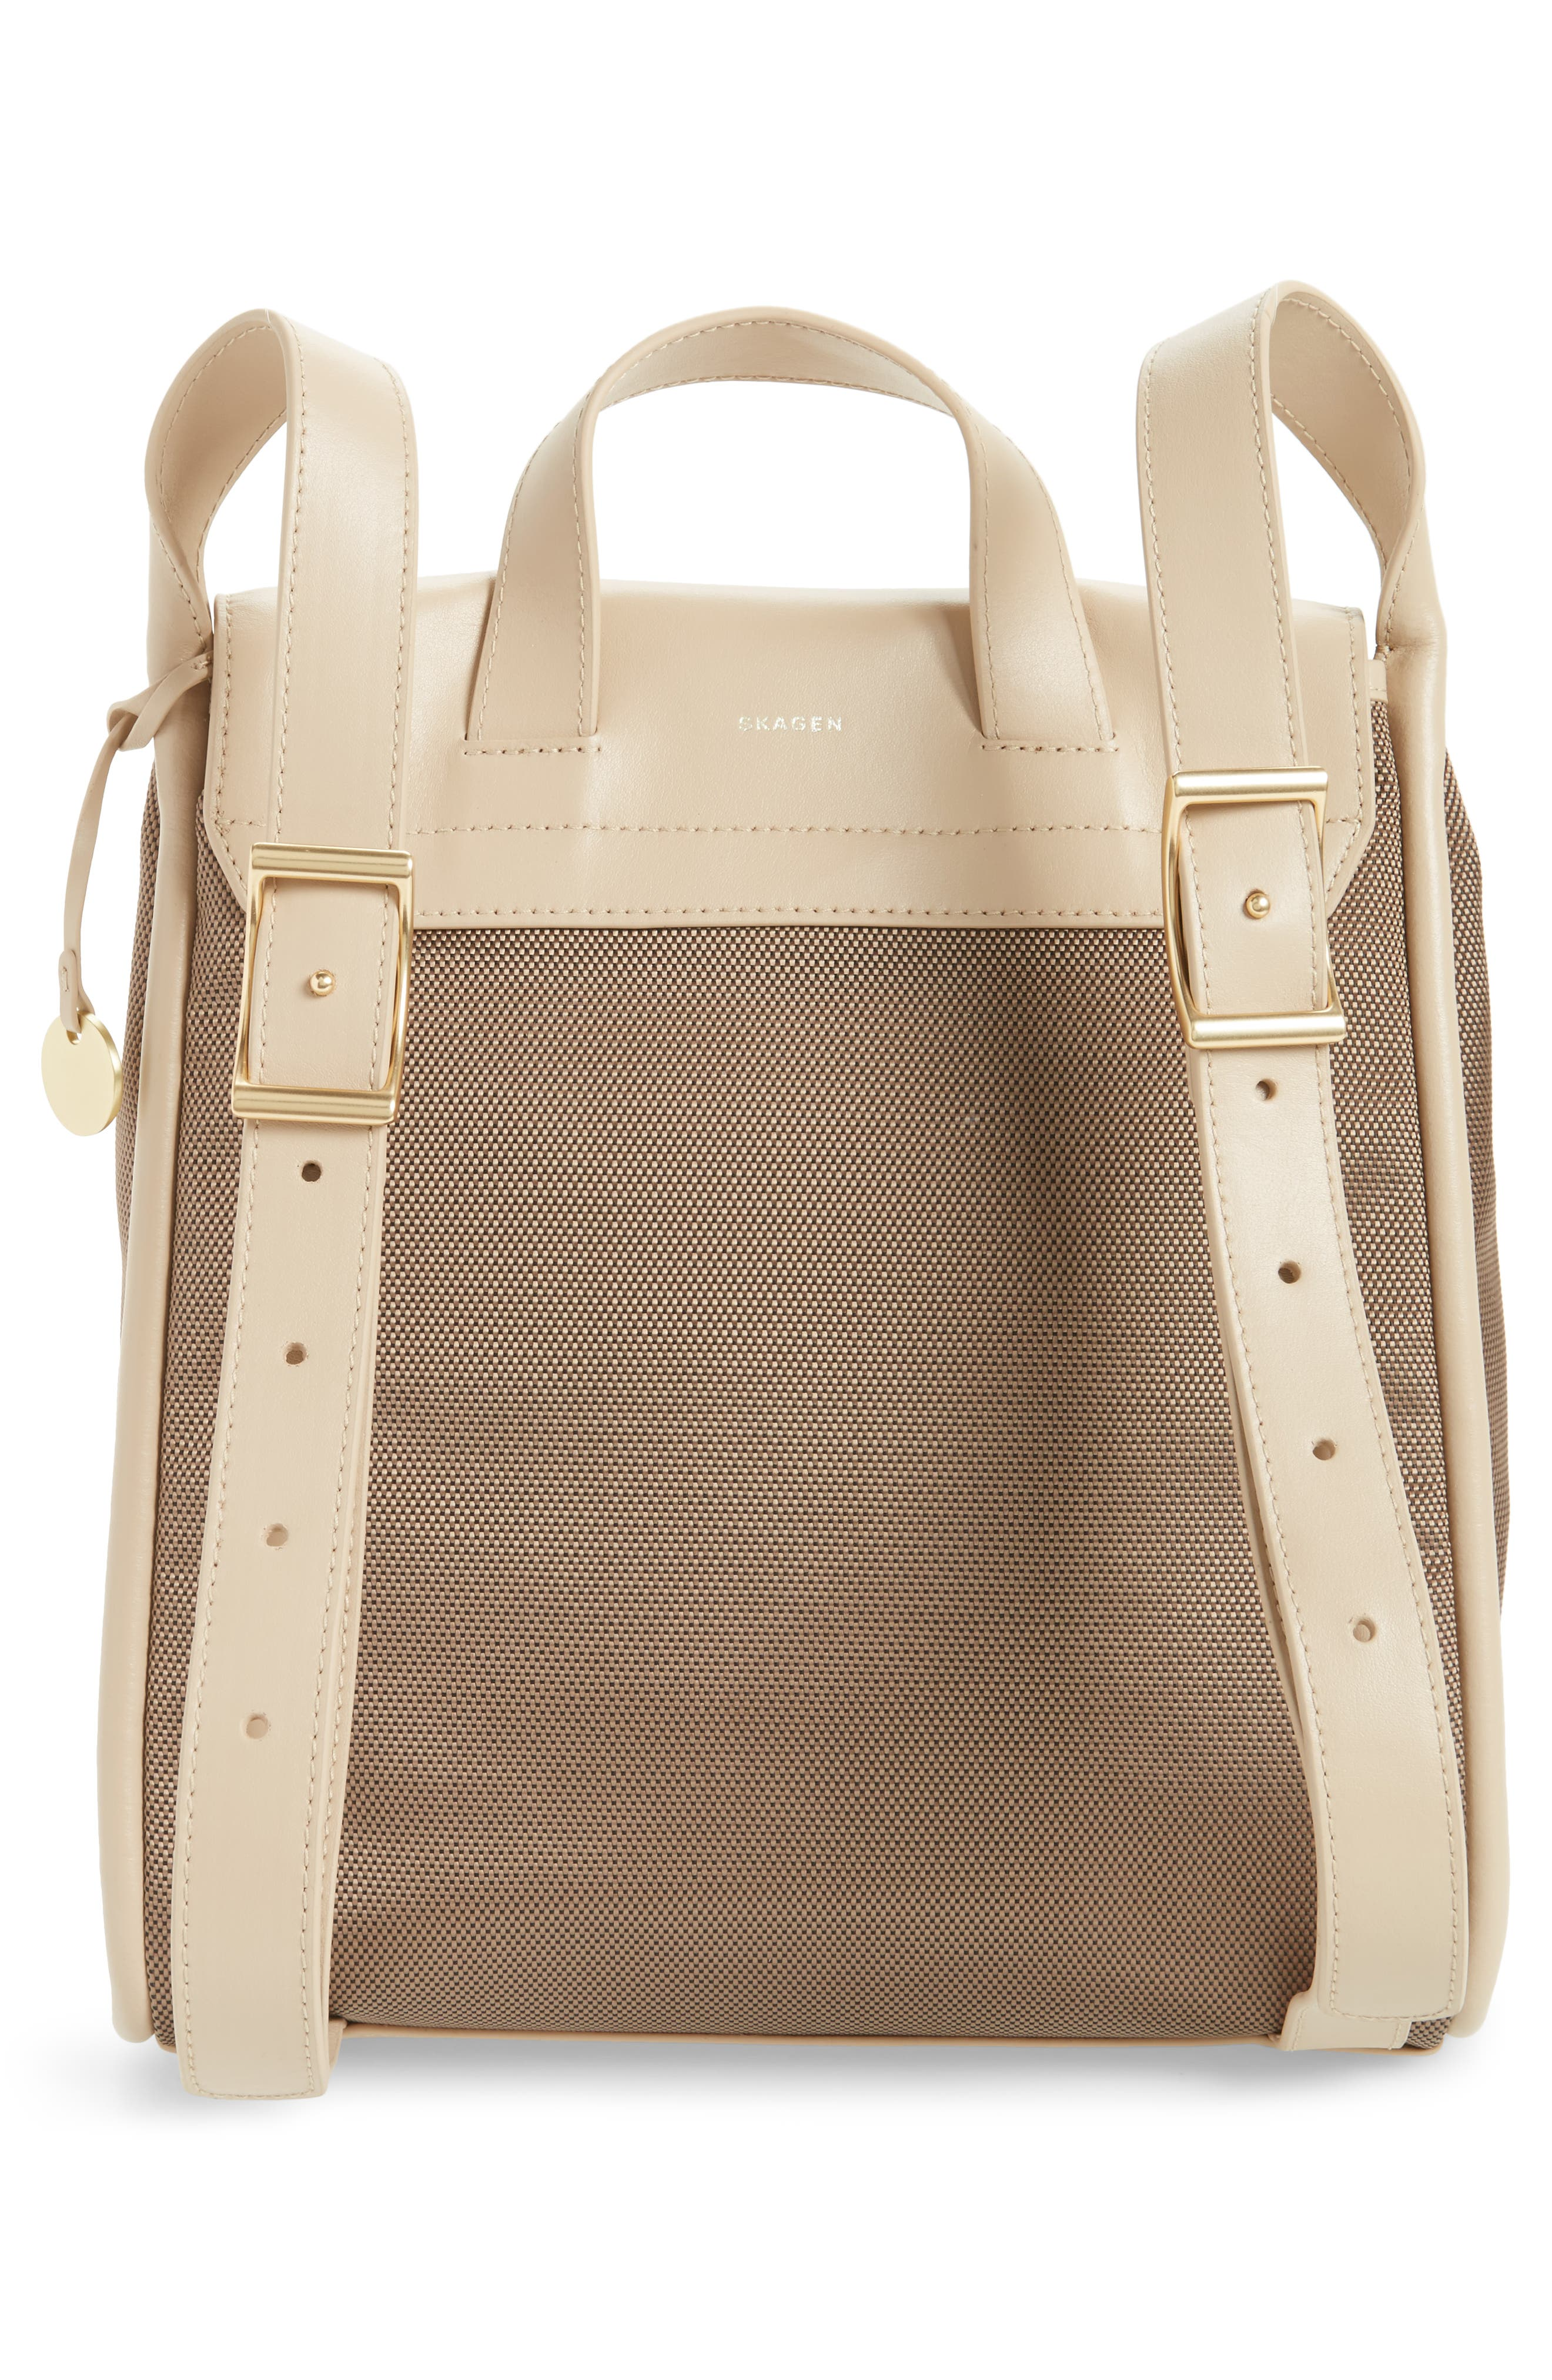 Ebba Leather & Canvas Backpack,                             Alternate thumbnail 3, color,                             200